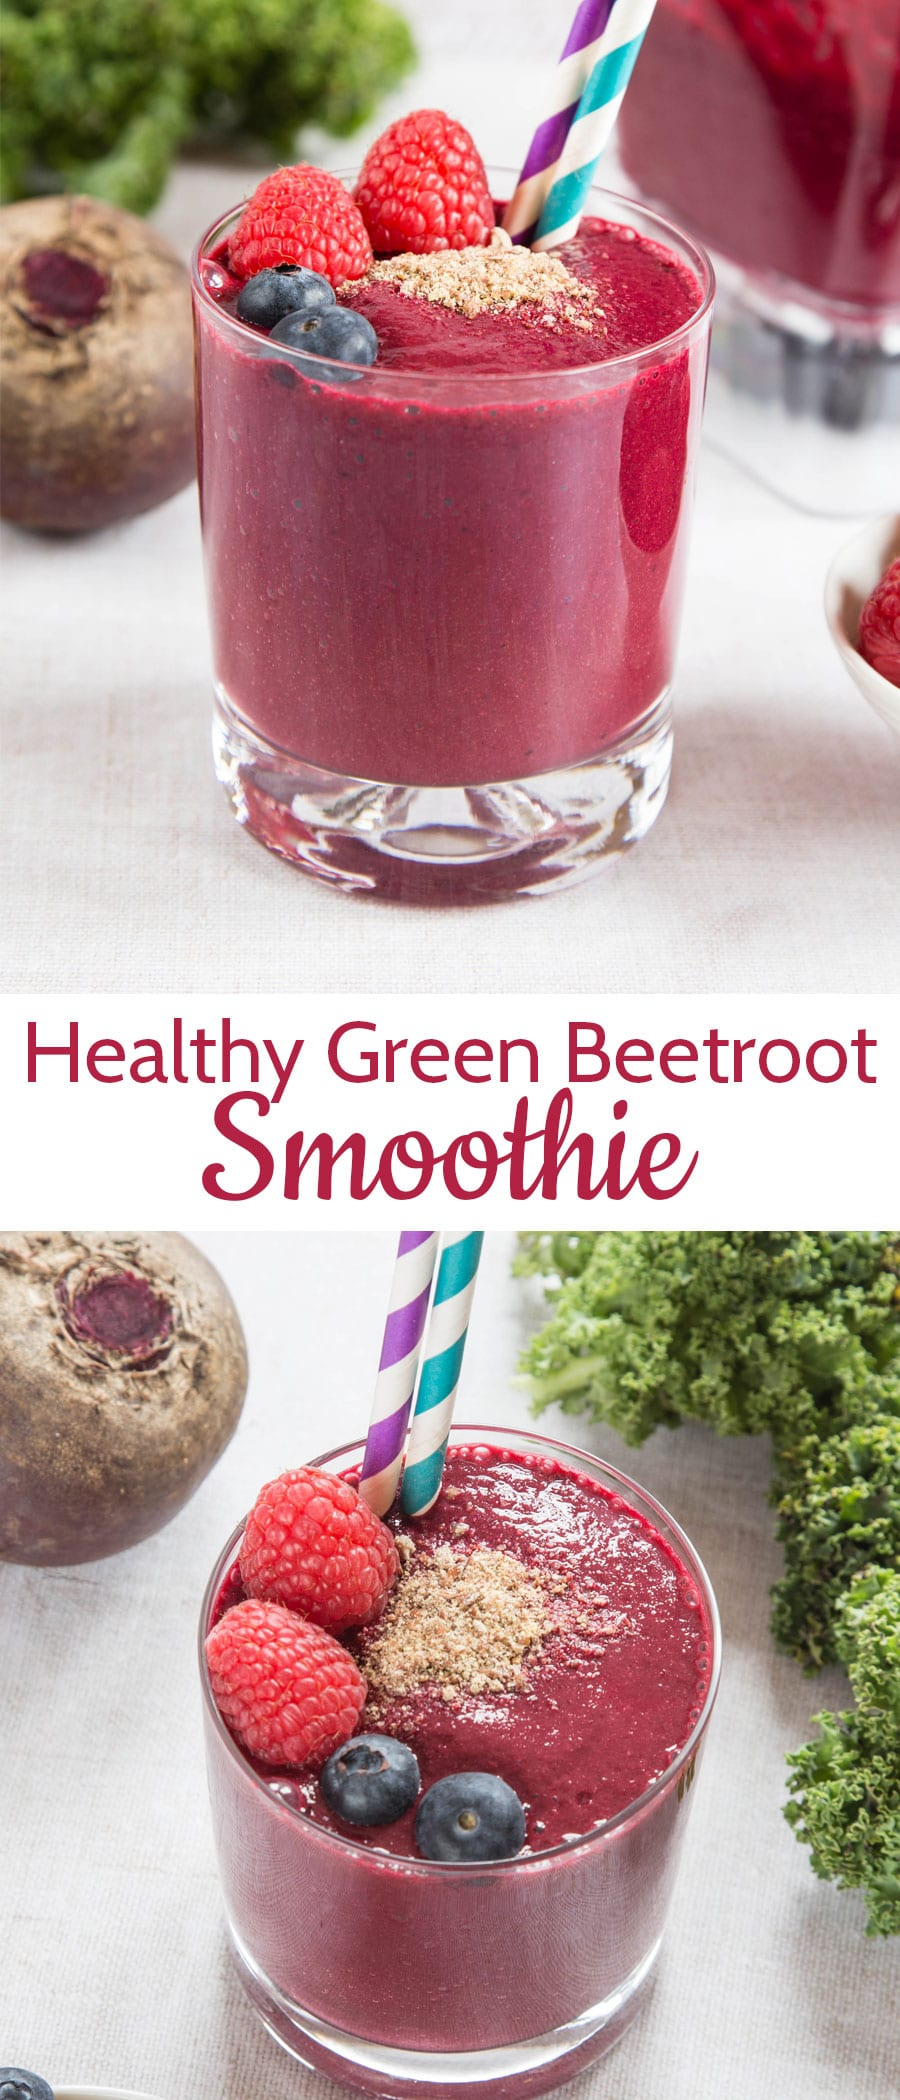 This vibrant beetroot smoothie with added kale is so easy to make - simply pop all the ingredients into a power blender and whizz and go. A nutrition packed power breakfast! Delicious with earthy notes and a vibrant colour from the beetroot.